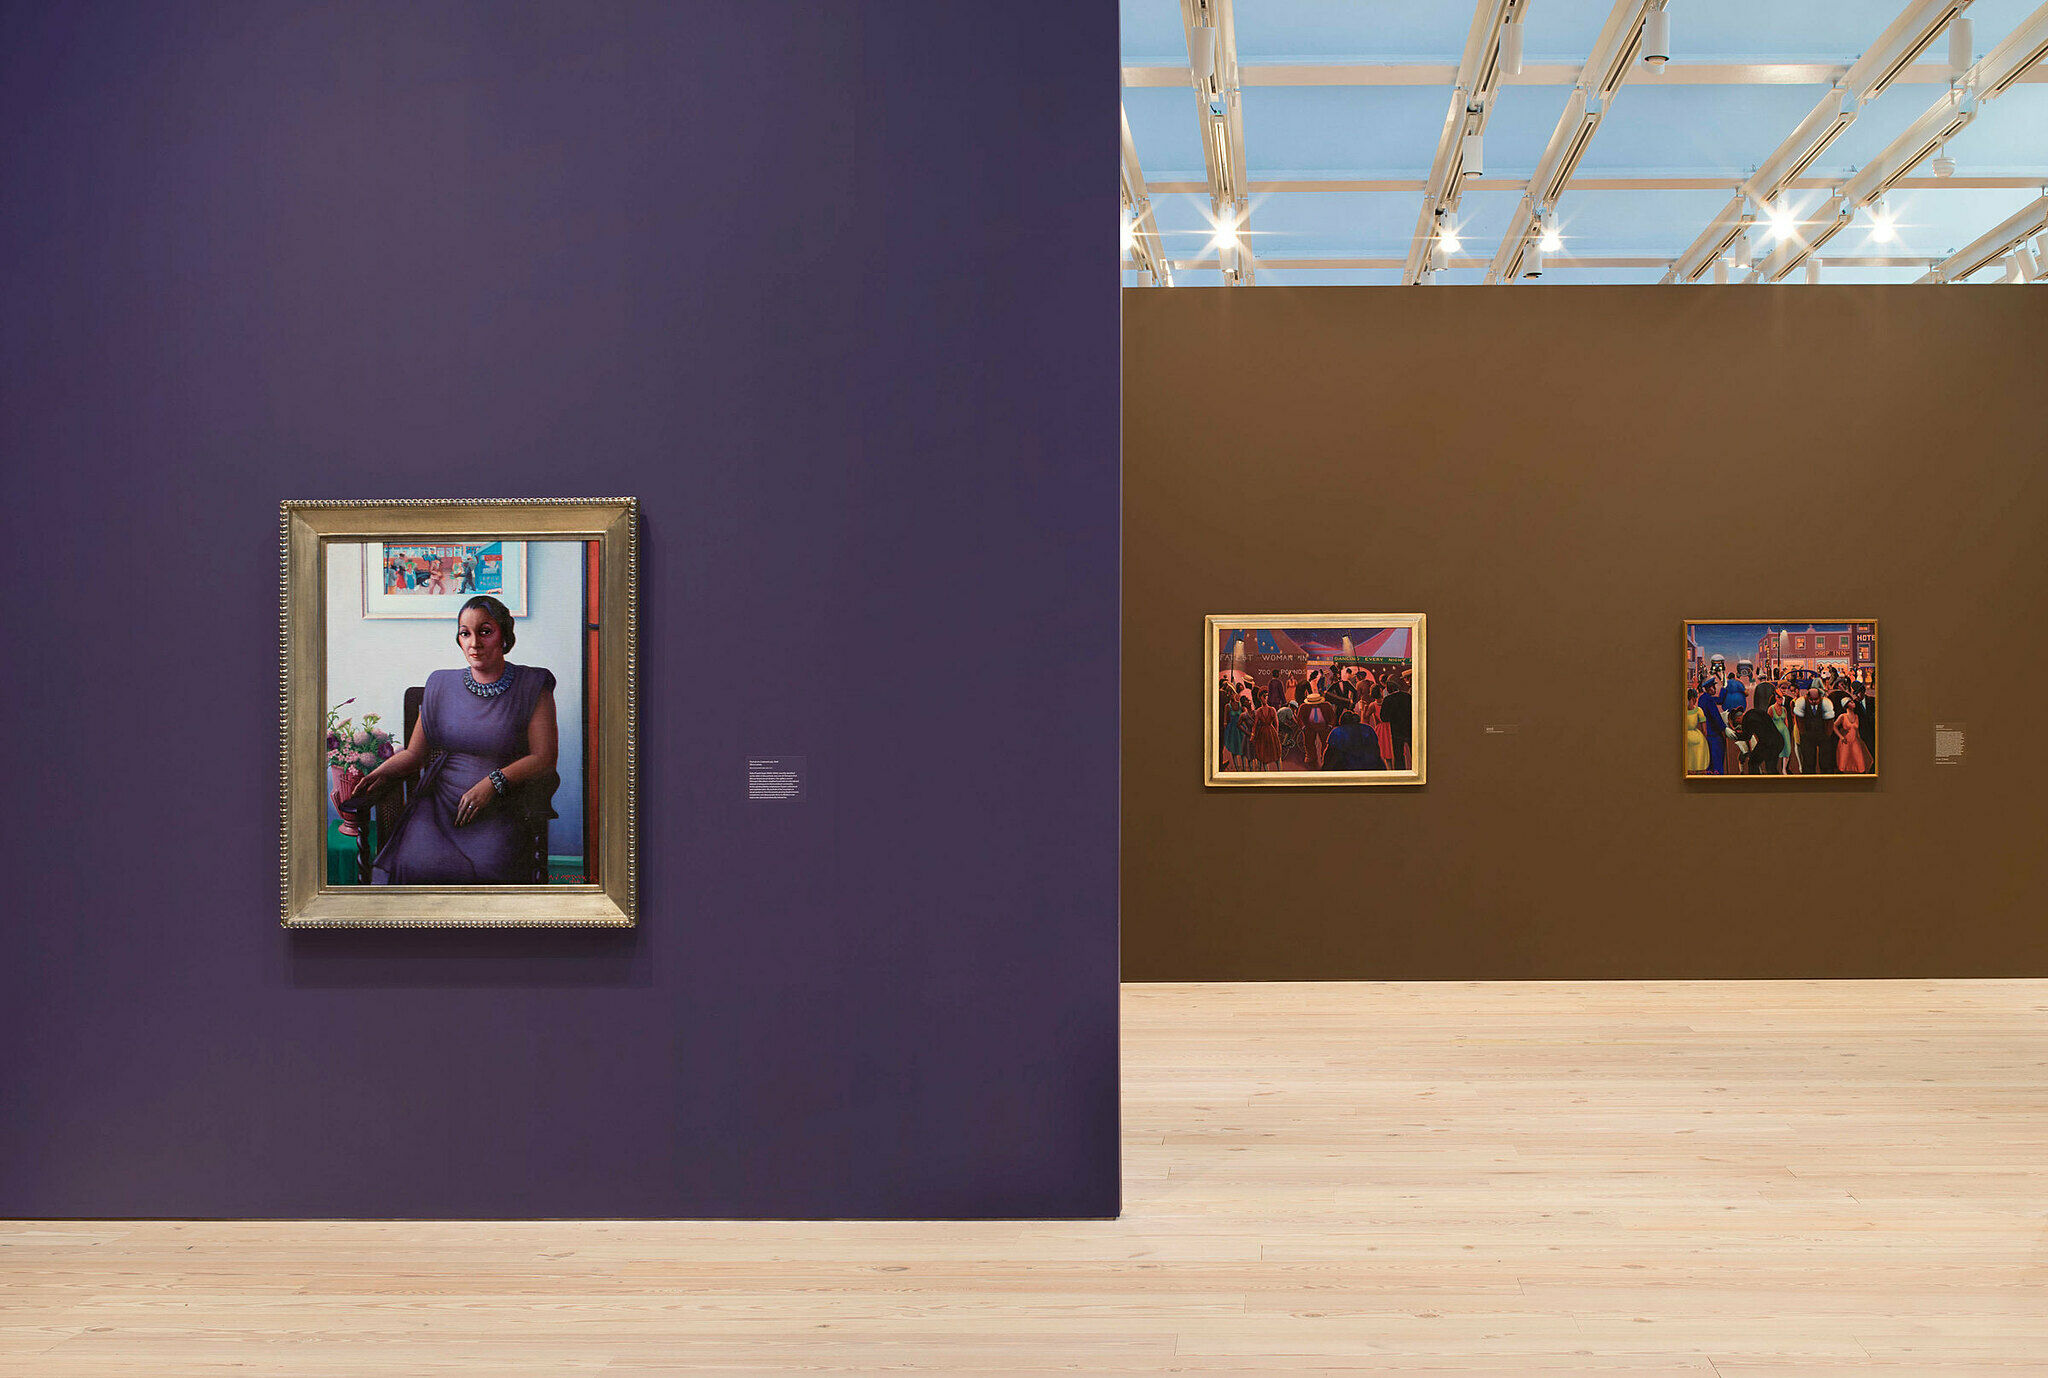 Paintings by Archibald Motley in a gallery with purple and brown walls.